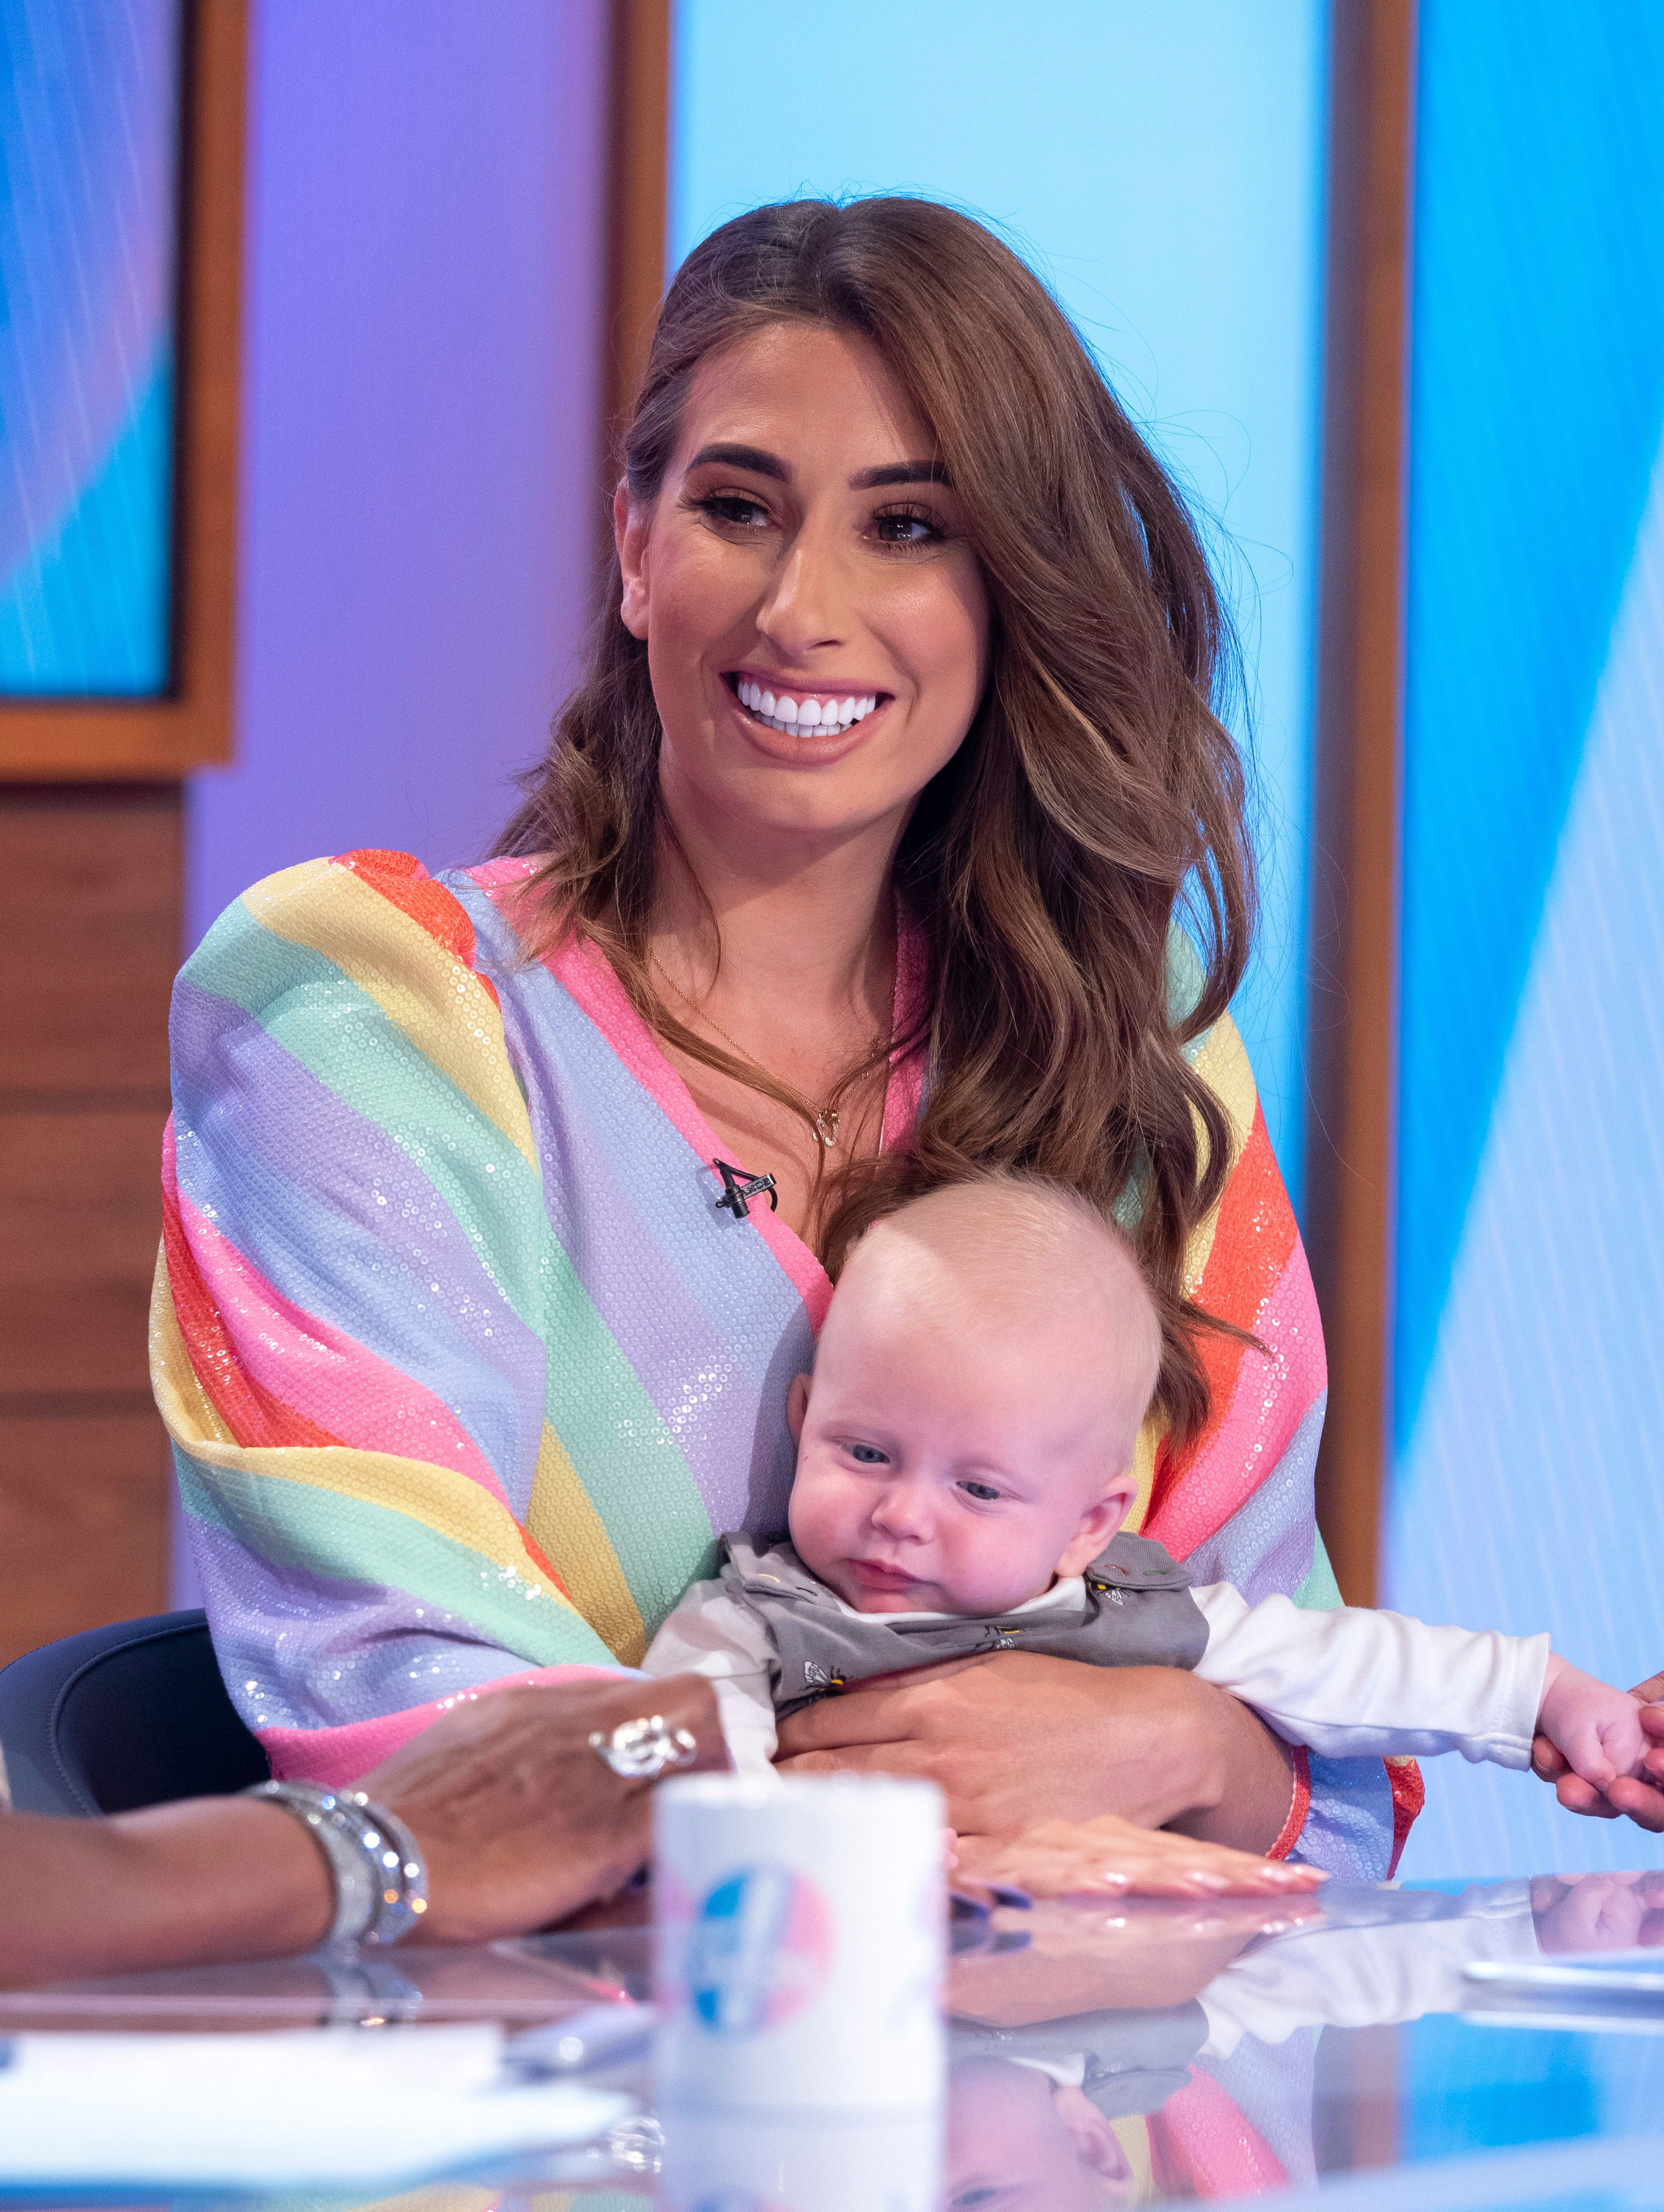 Stacey Solomon returns to Loose Women with adorable baby Rex